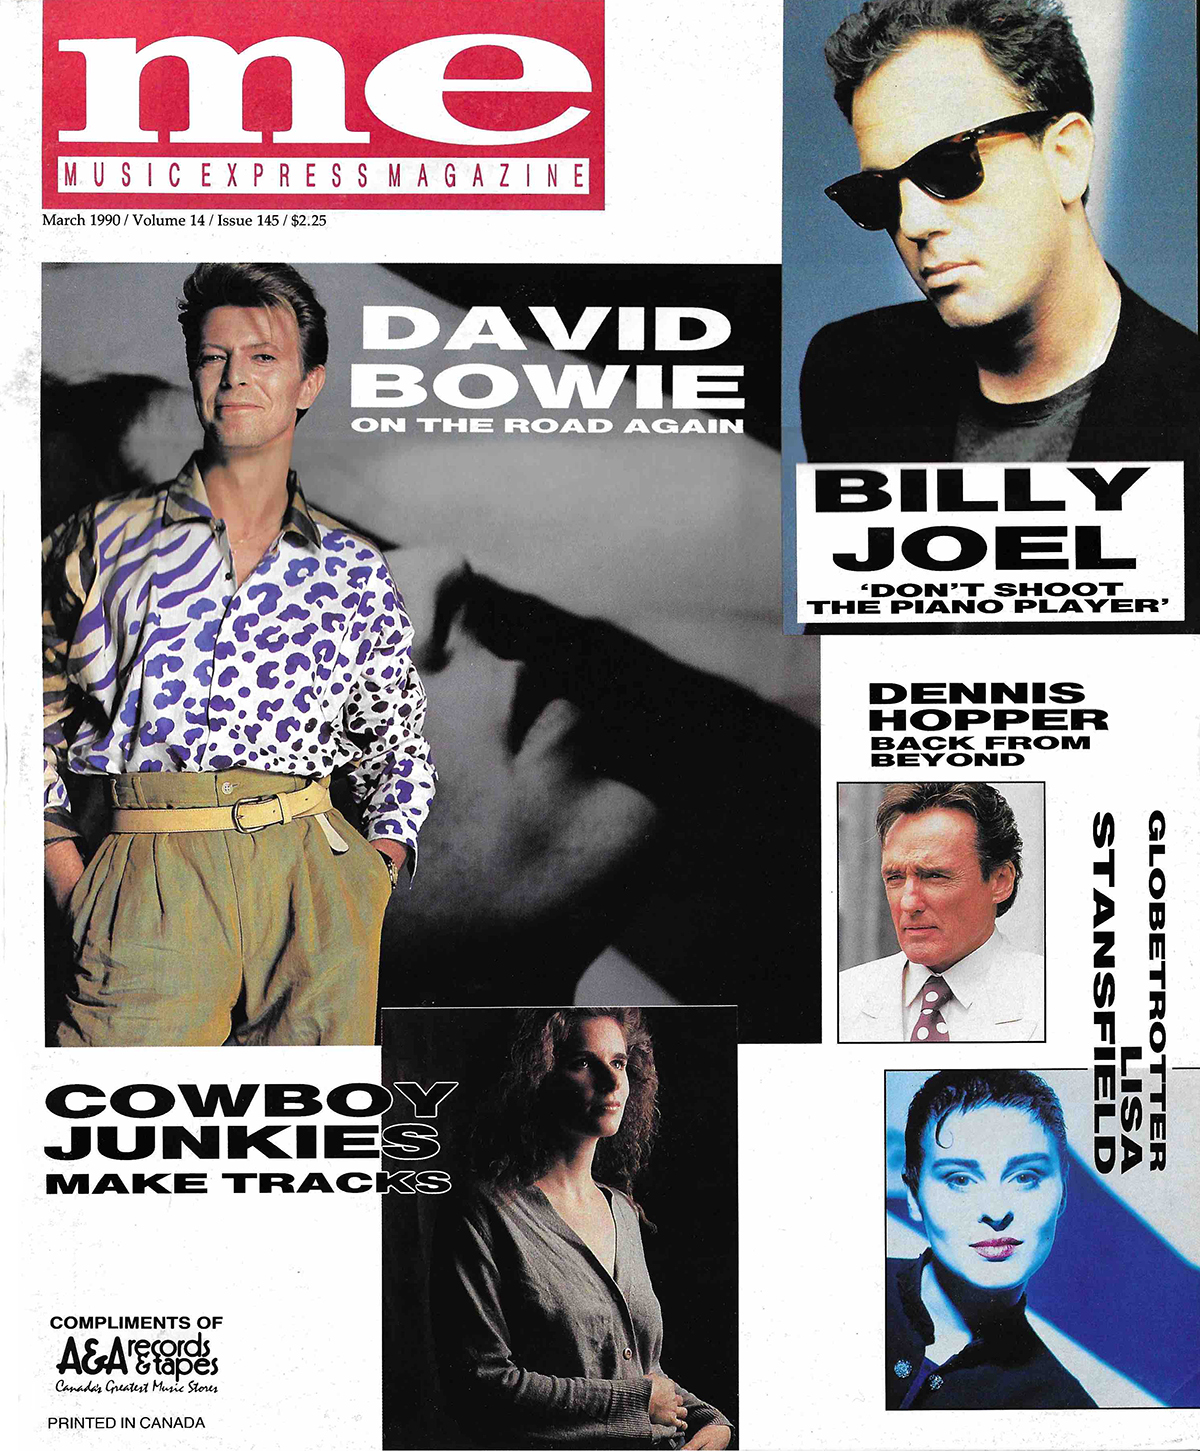 ME Music Express Magazine Issue 145